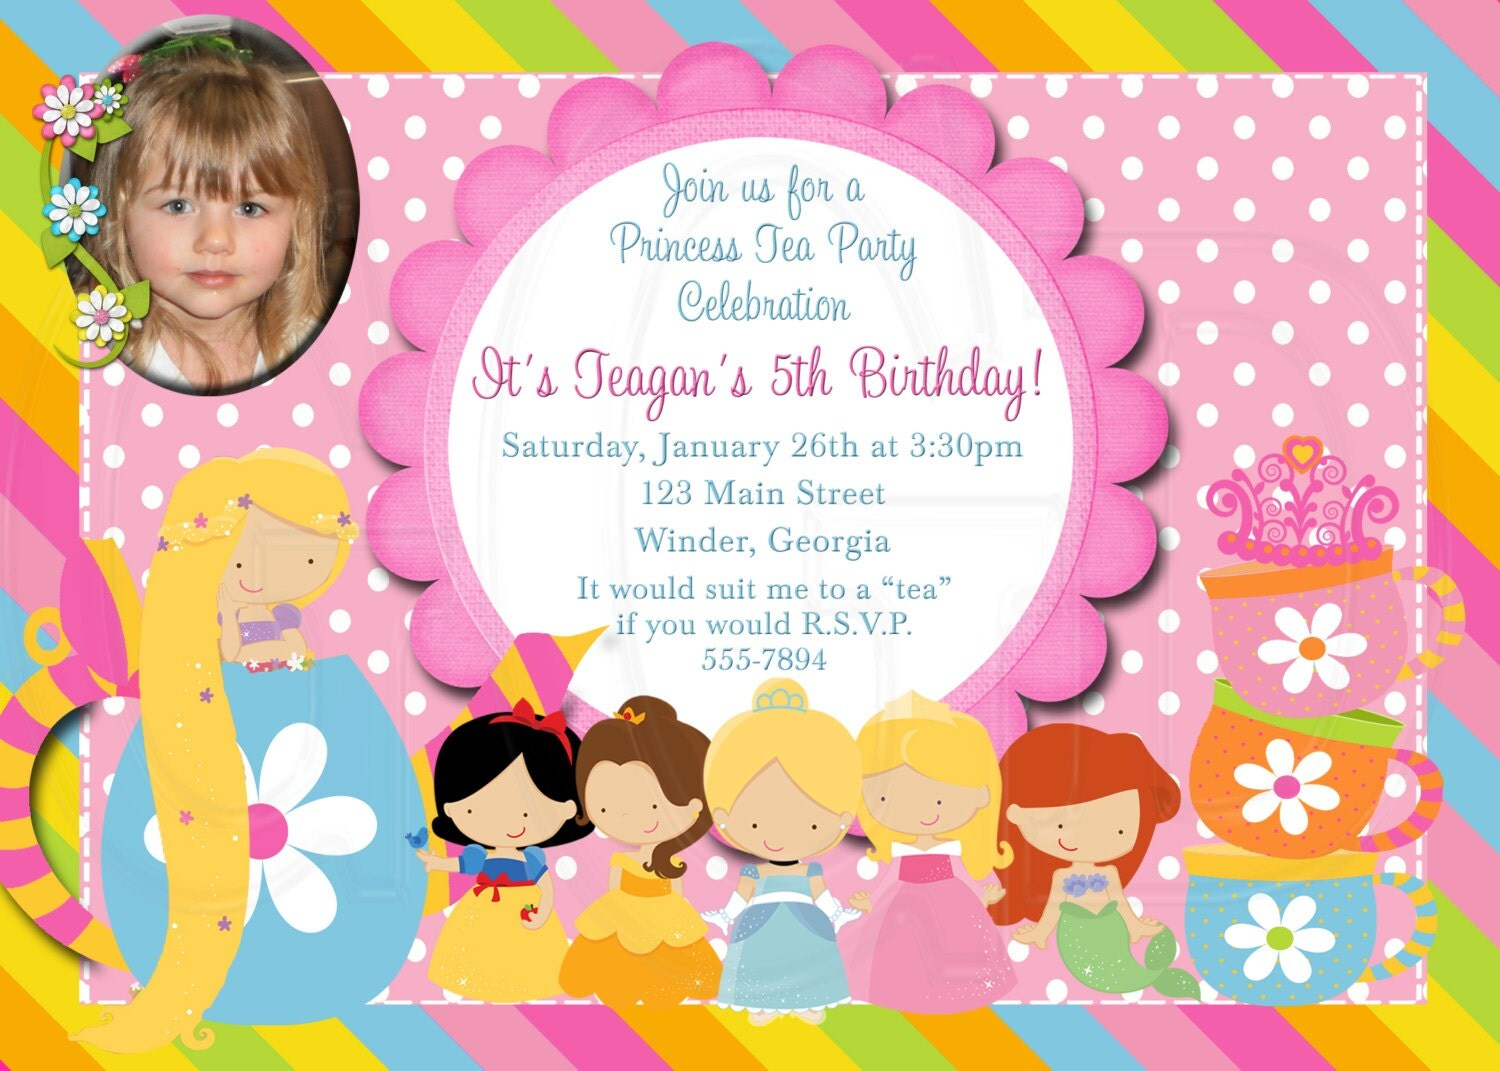 Princess Tea Party Invitations is one of our best ideas you might choose for invitation design